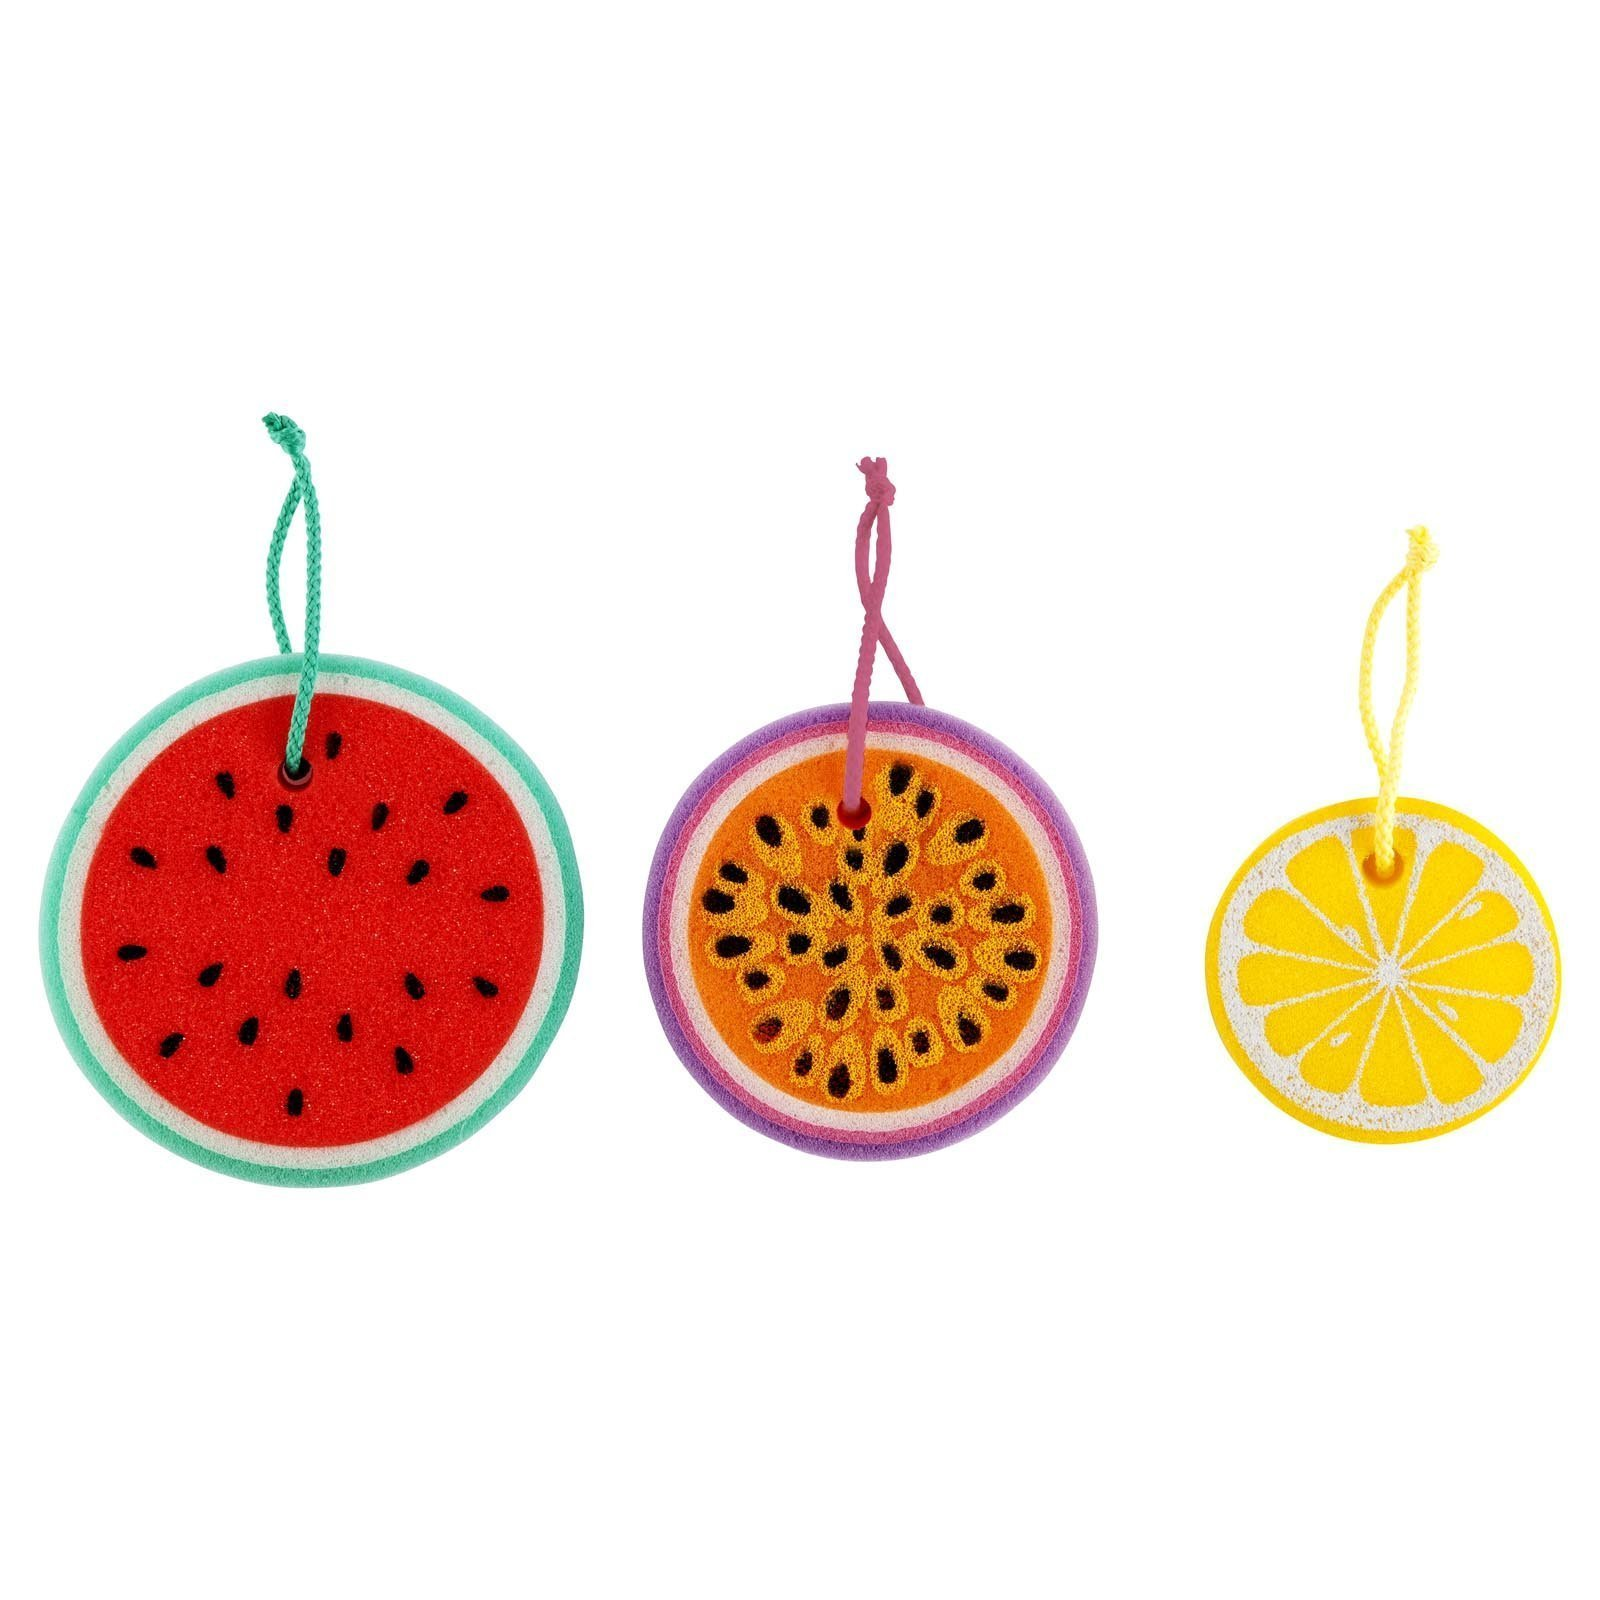 SunnyLIFE Colourful Bath & Shower Sponge Sets In Fun Designs - Fruit Salad Multi